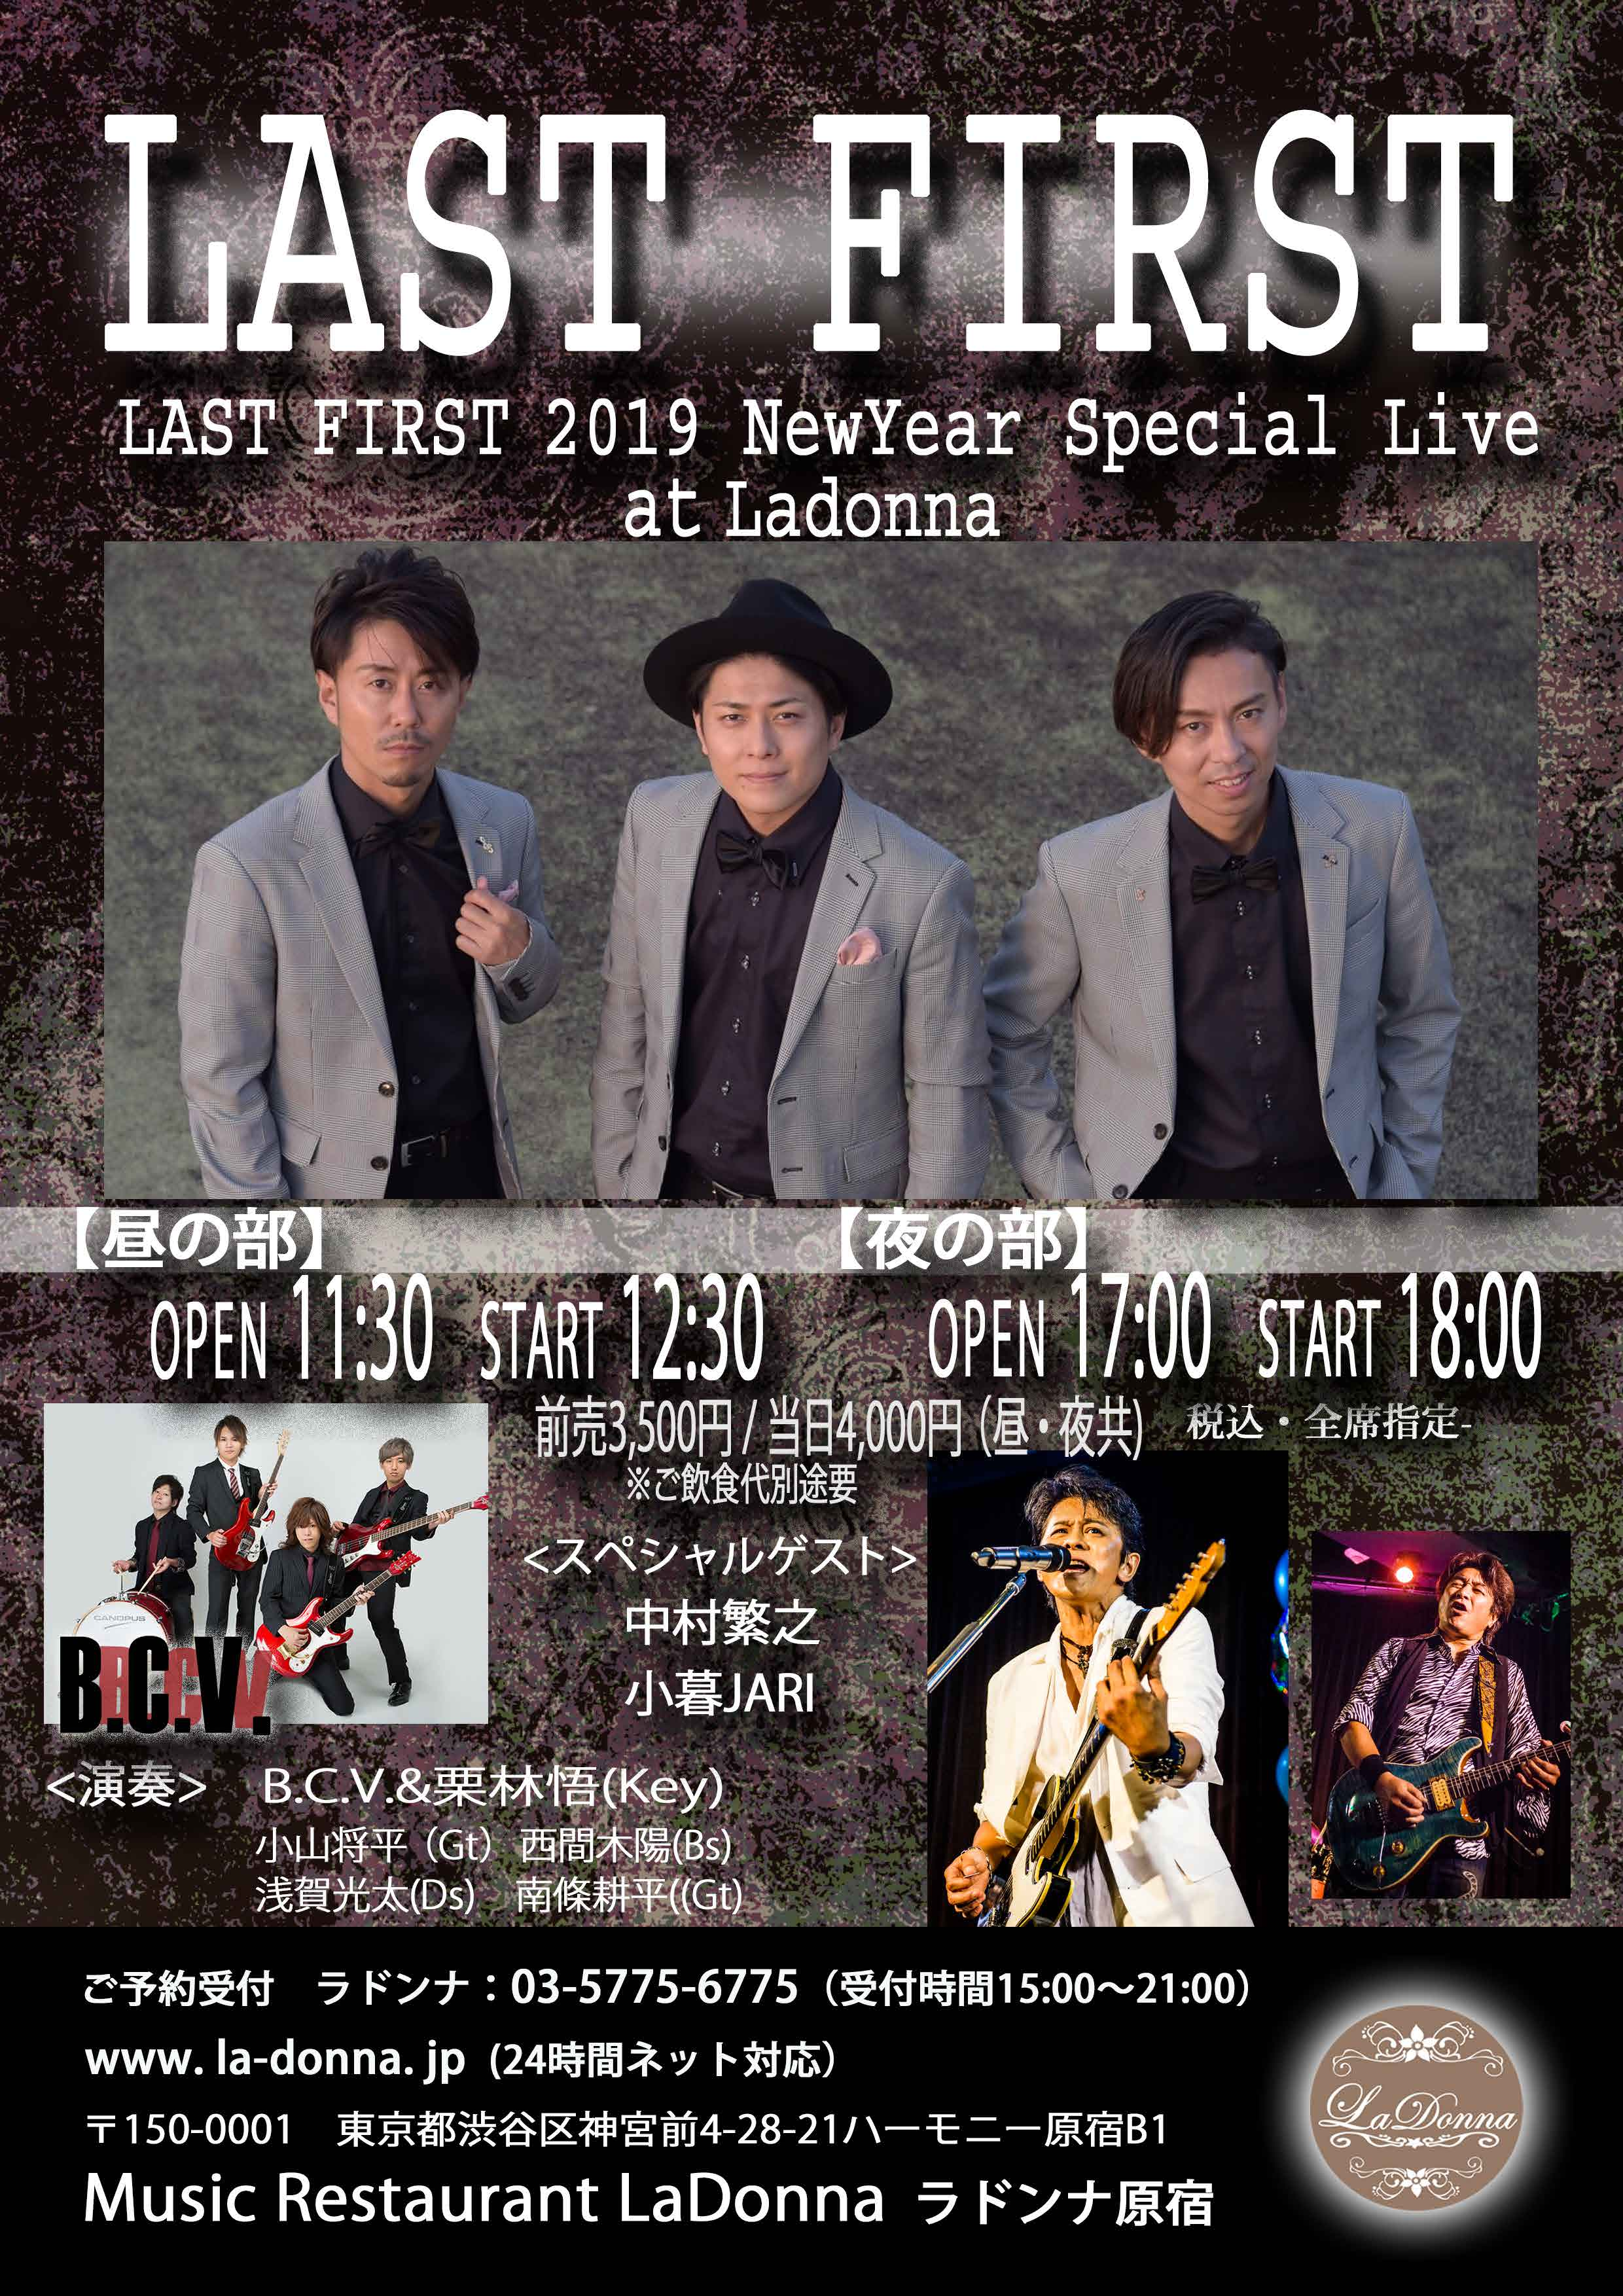 LAST FIRST 2019 NewYear Special Live